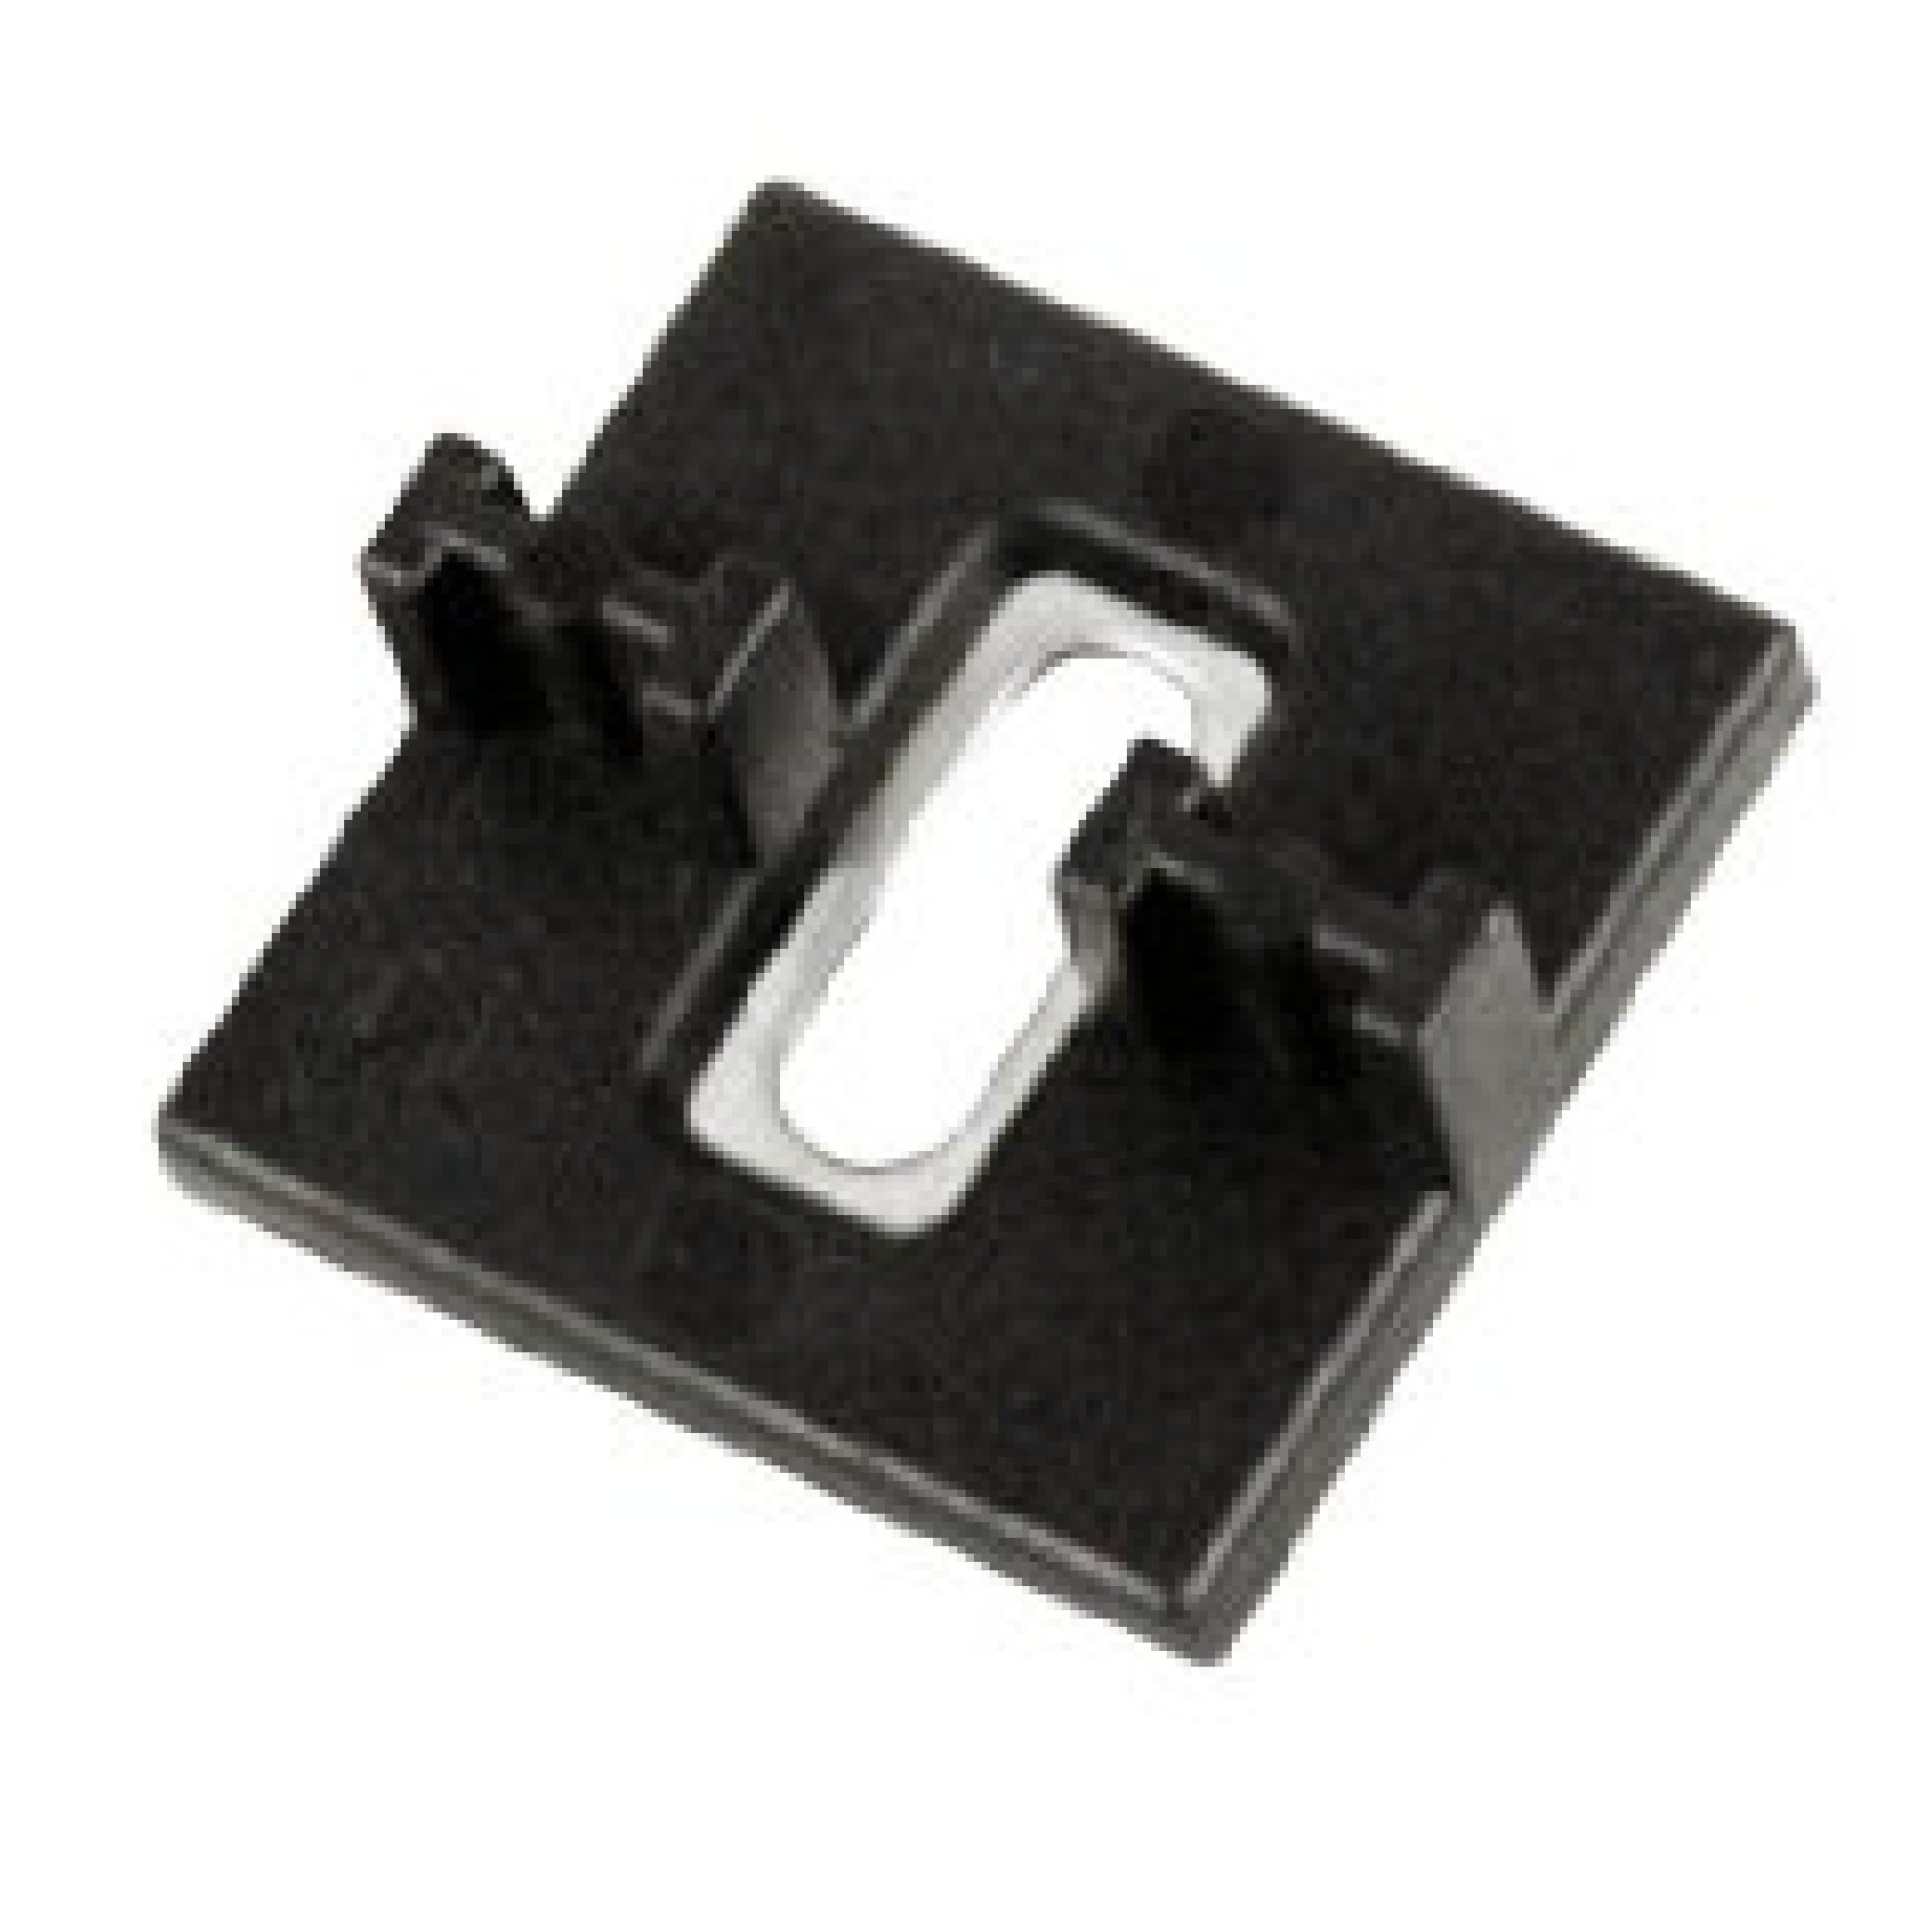 Ipe Clip Extreme 4 Fasteners - FOR METAL JOISTS - 525 pcs for 300 sq. ft. - 5/32'' Spacing - Black Clips - Includes Clips & 2-1/4'' Stainless SELF DRILLING SCREWS